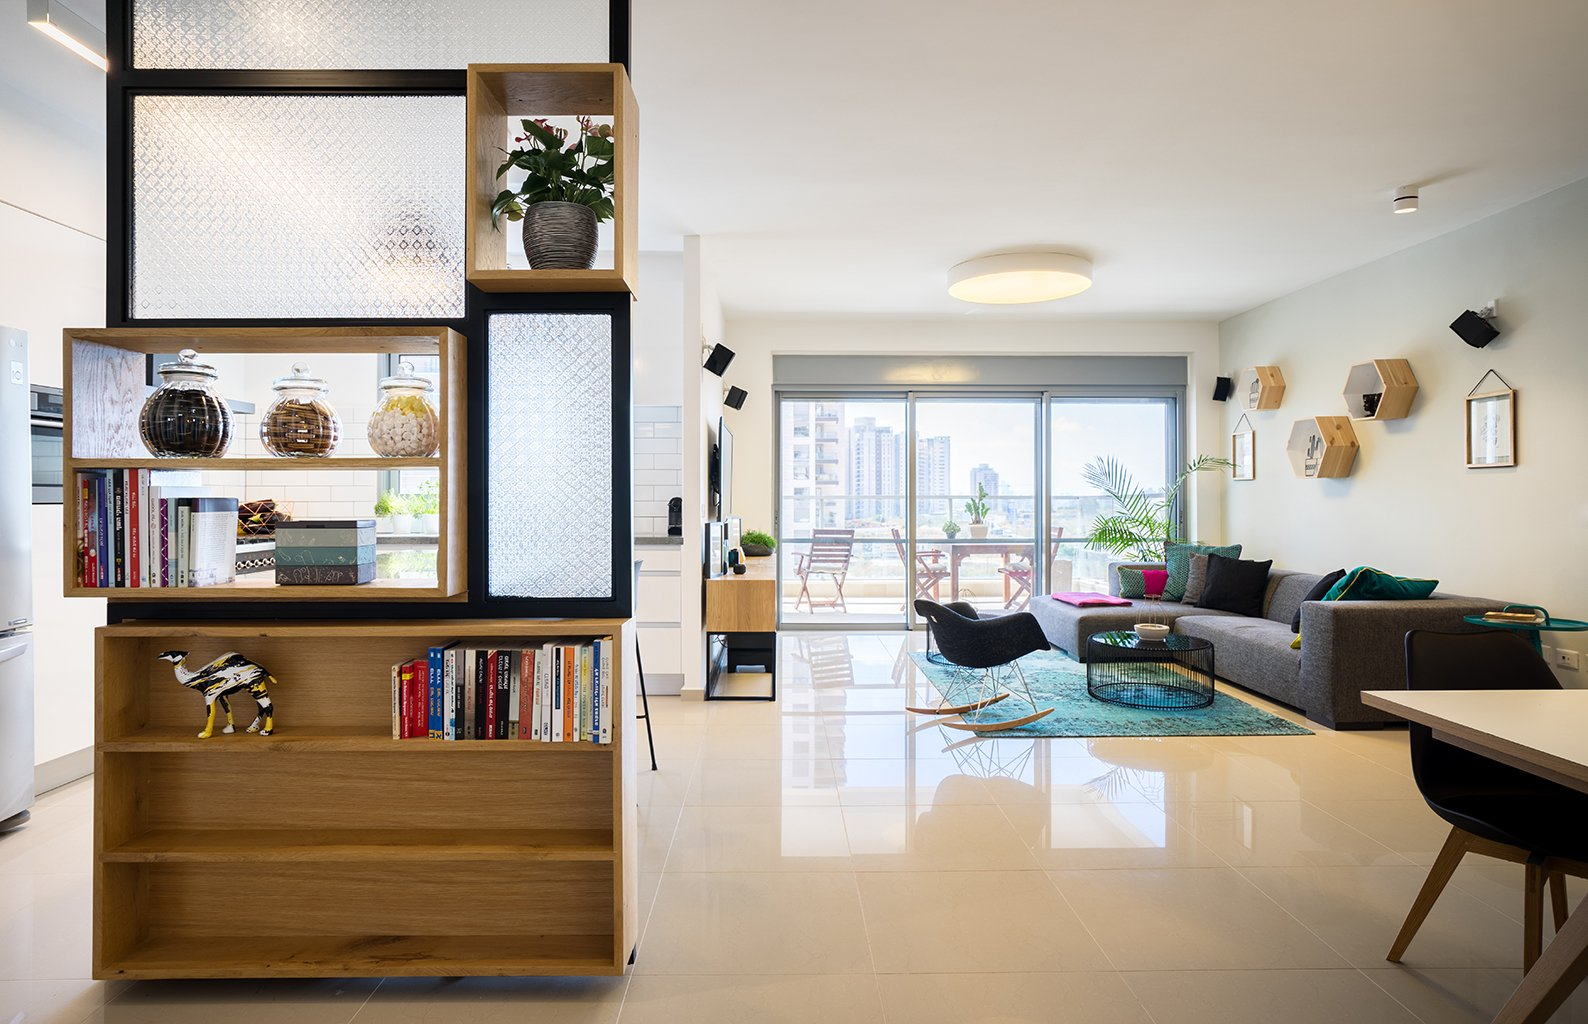 The most immediately striking feature of this 1,400-square-foot in a 21-floor high-rise is the shelving unit/room divider between the kitchen and living area.  Photo 2 of 4 in A Riotous Makeover for a Generic  High-Rise Home